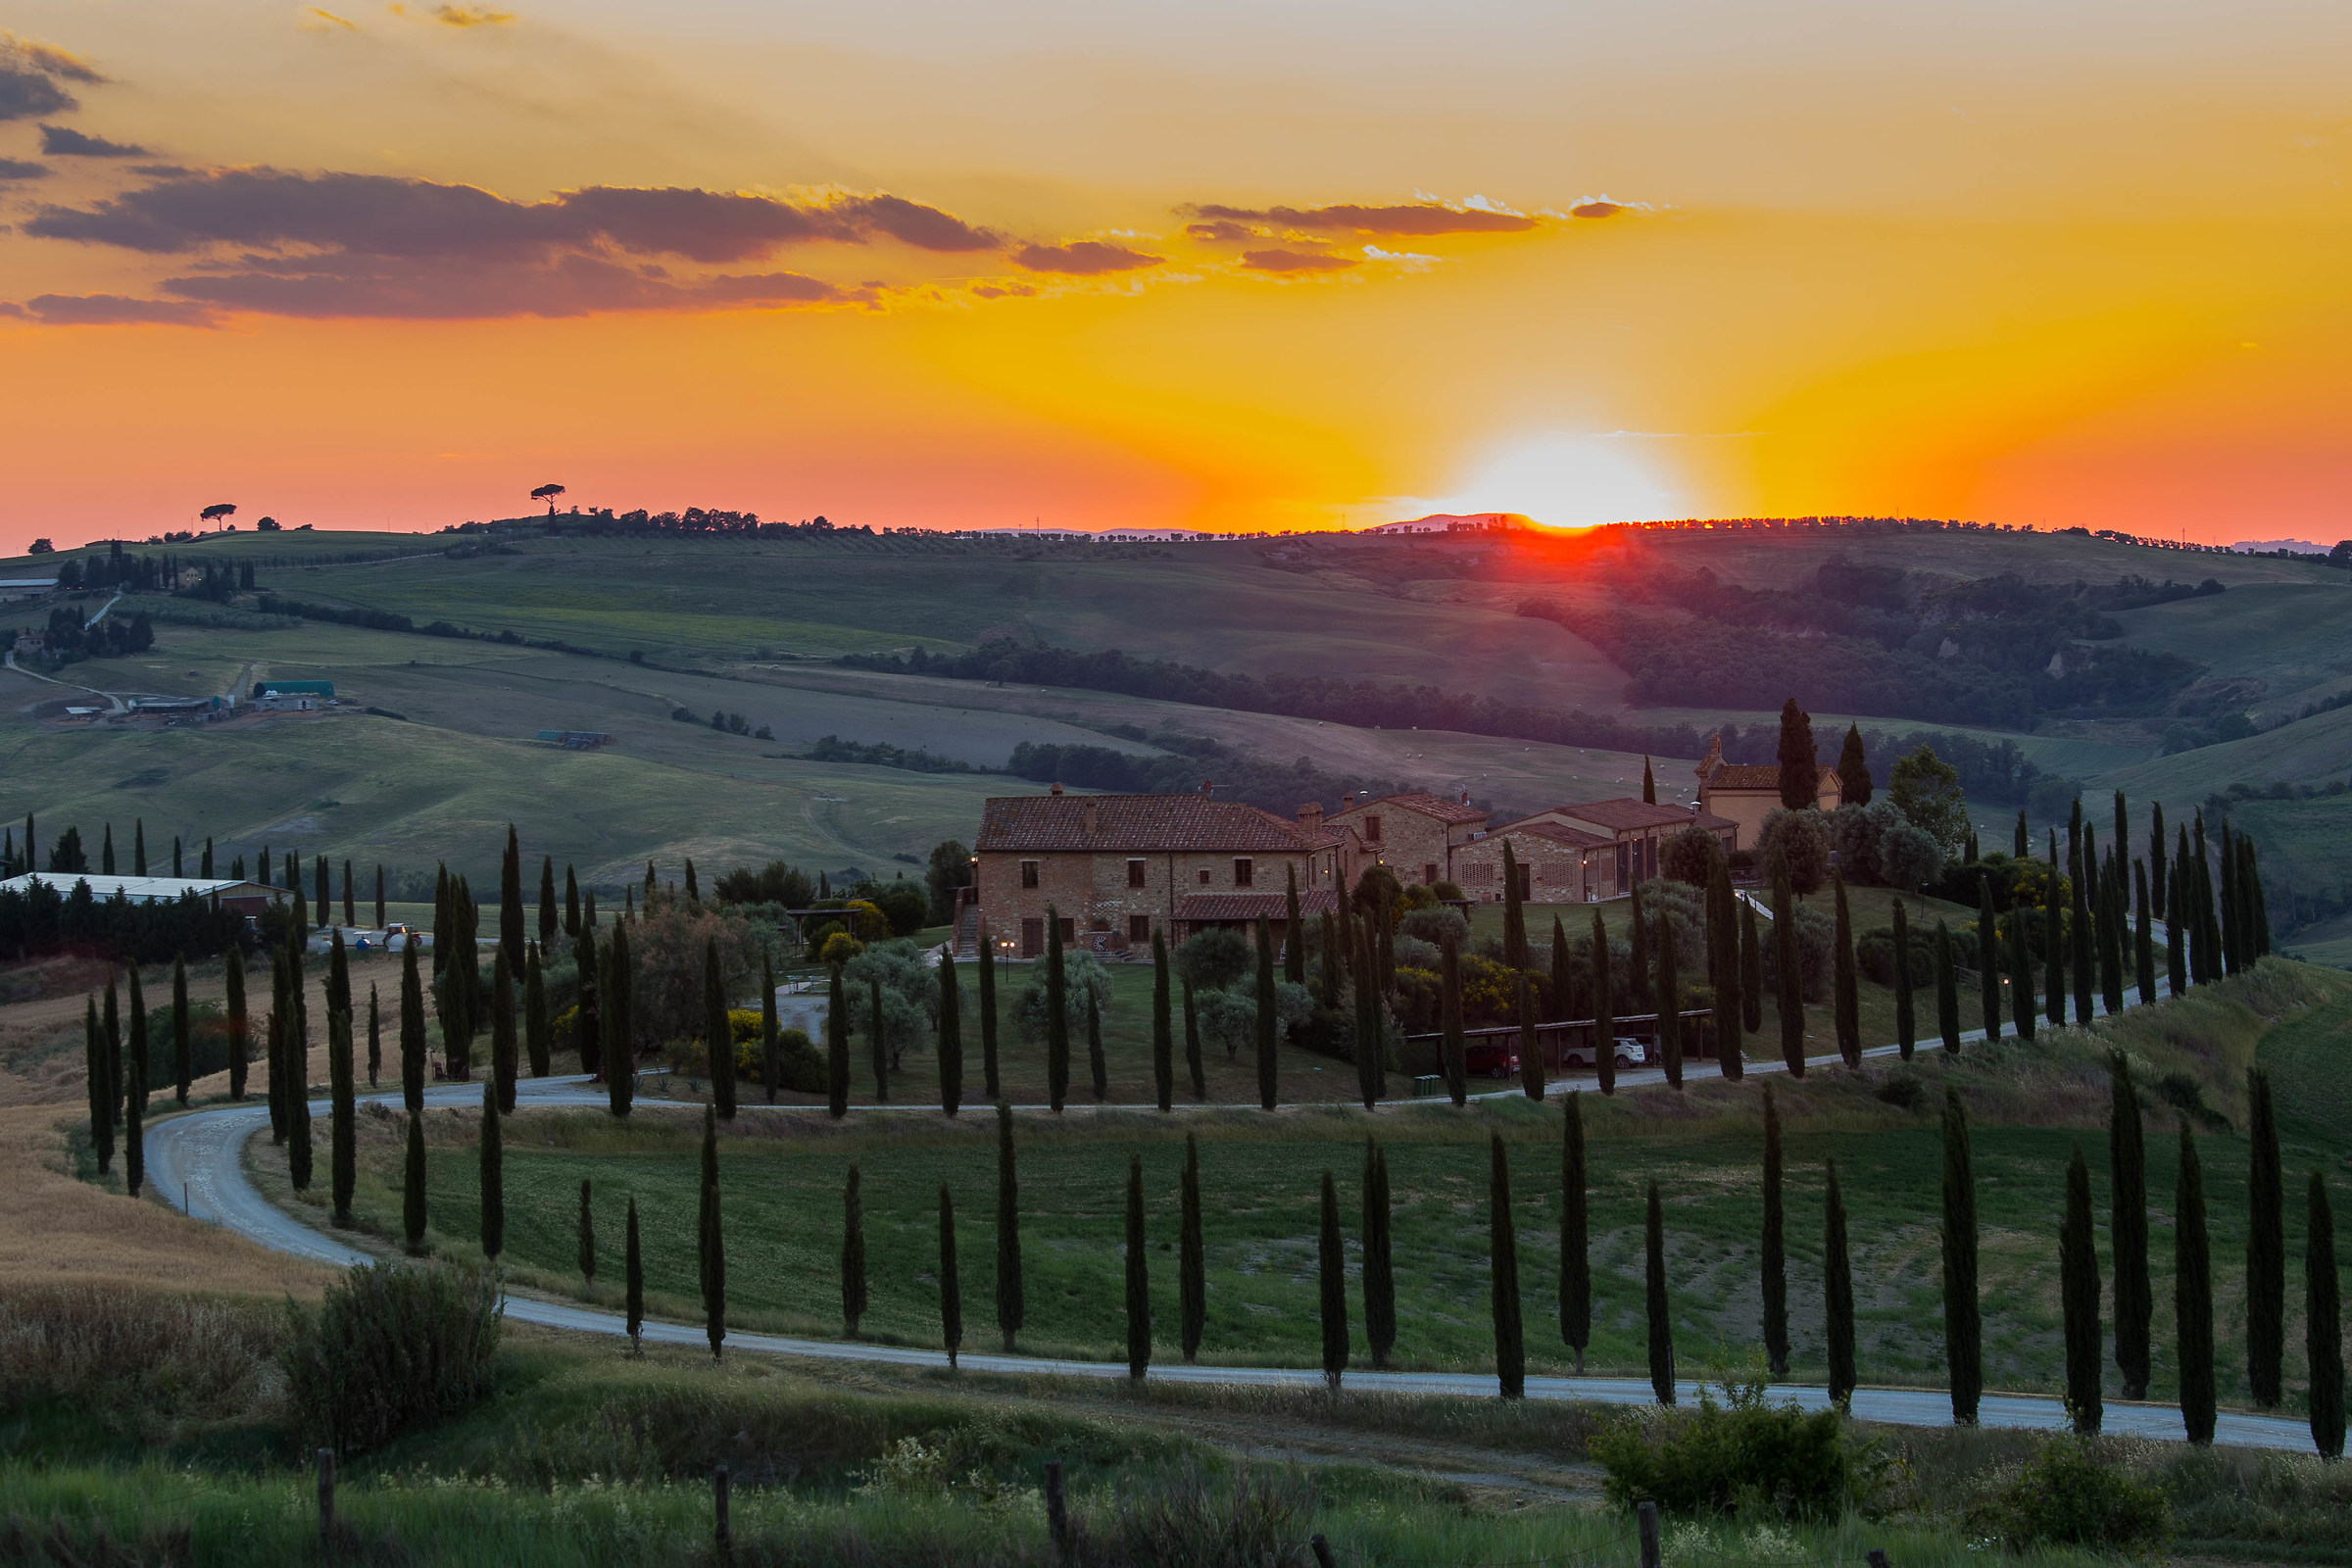 Sunset val d'Orcia test compo...